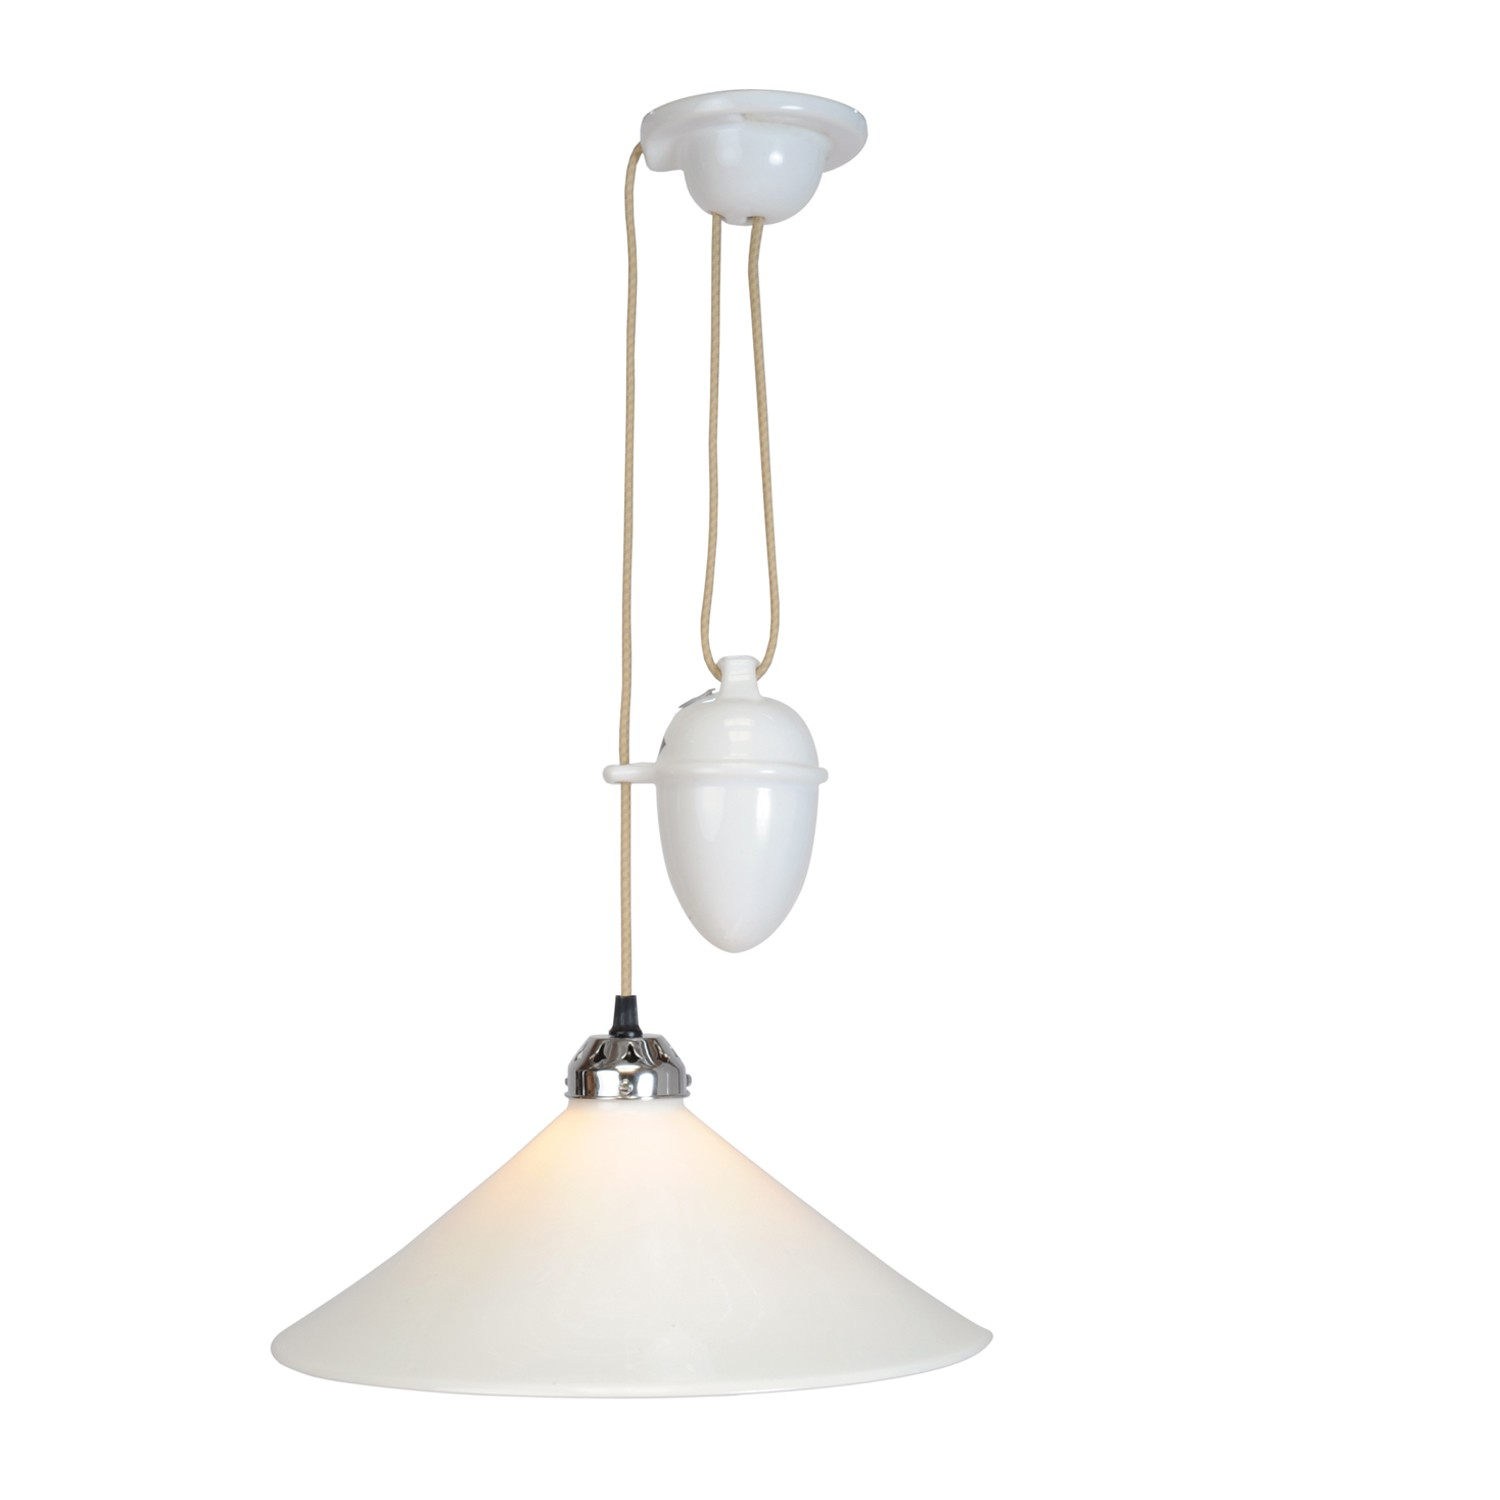 Cobb Large Plain Pendant Light Large, Rise & Fall